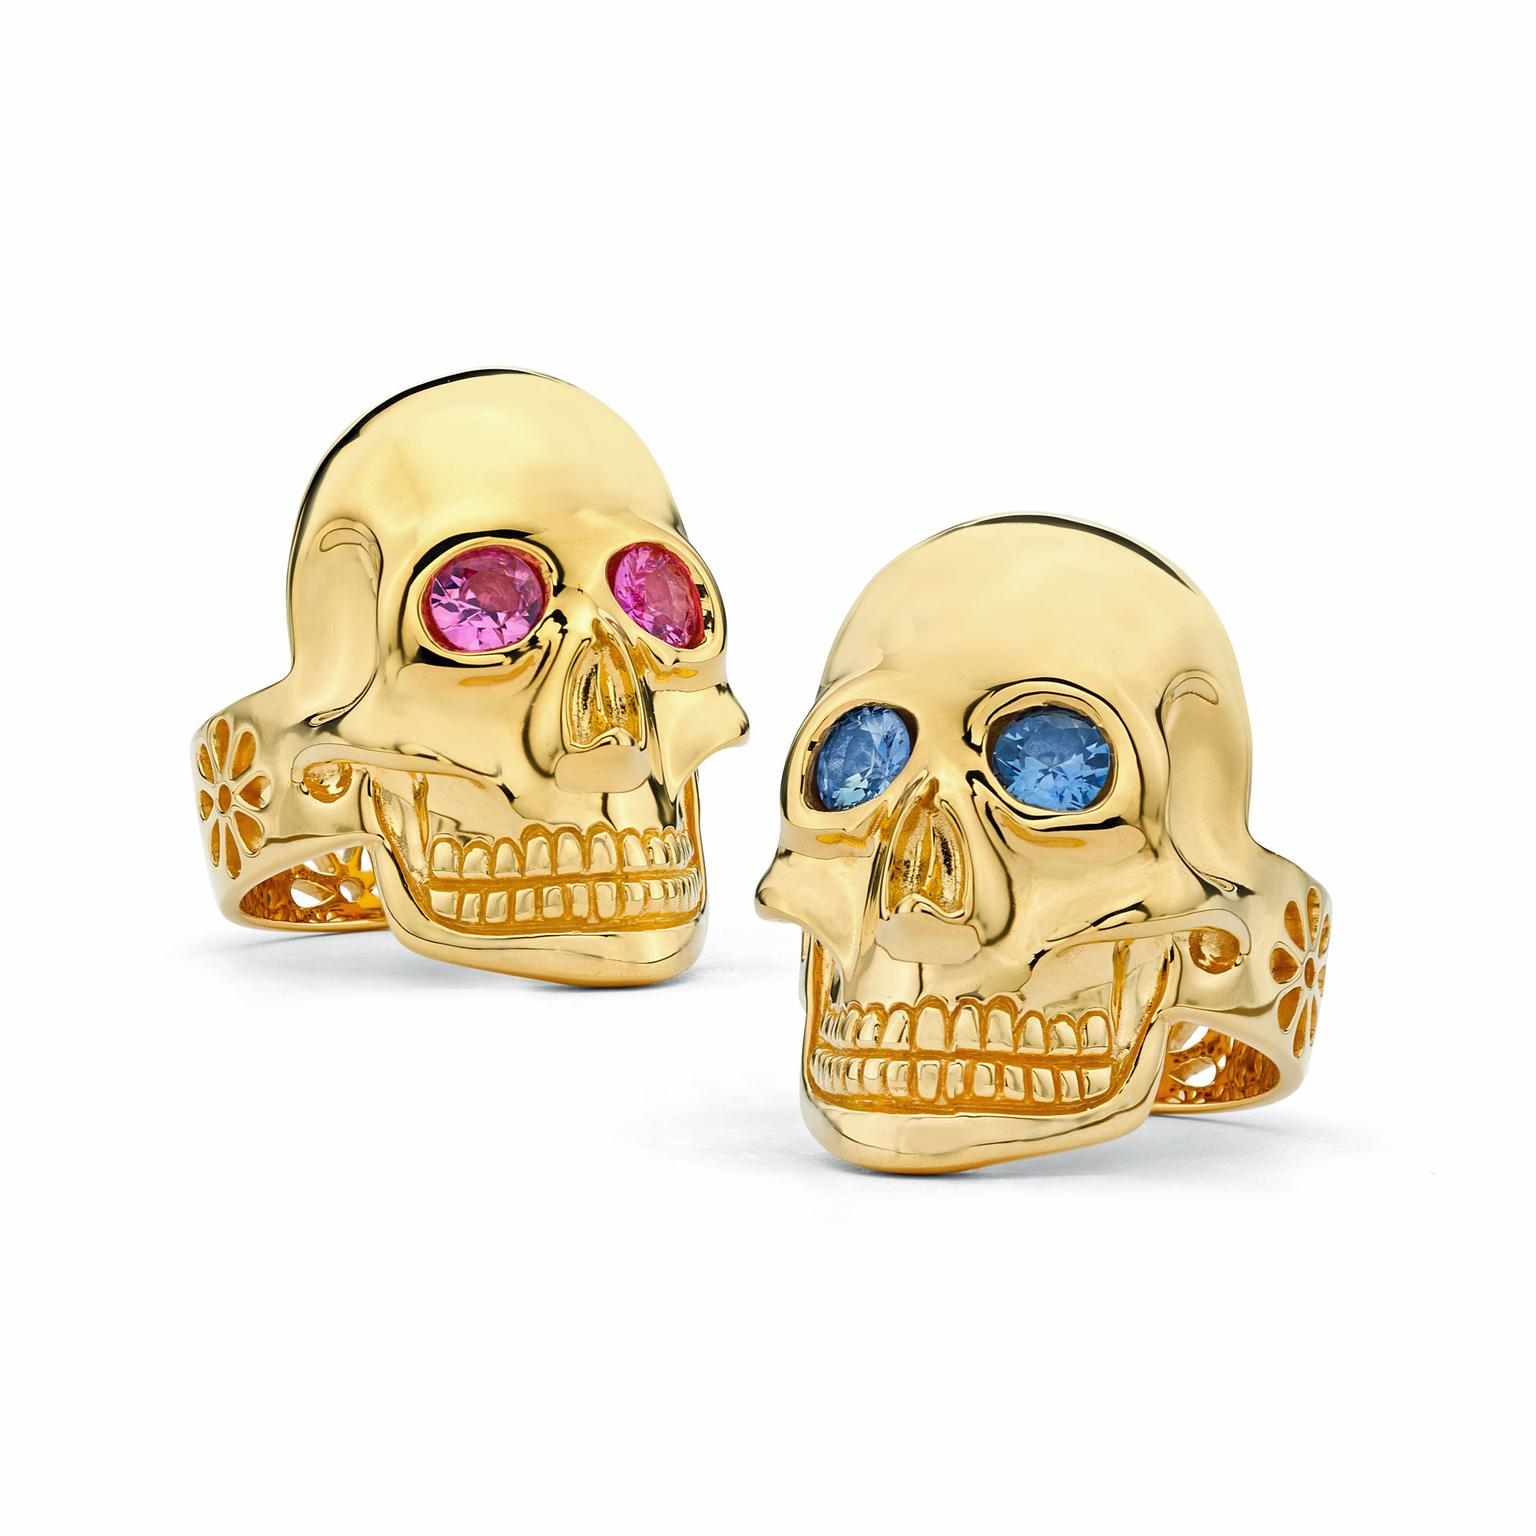 Frighteningly cool jewels for Halloween